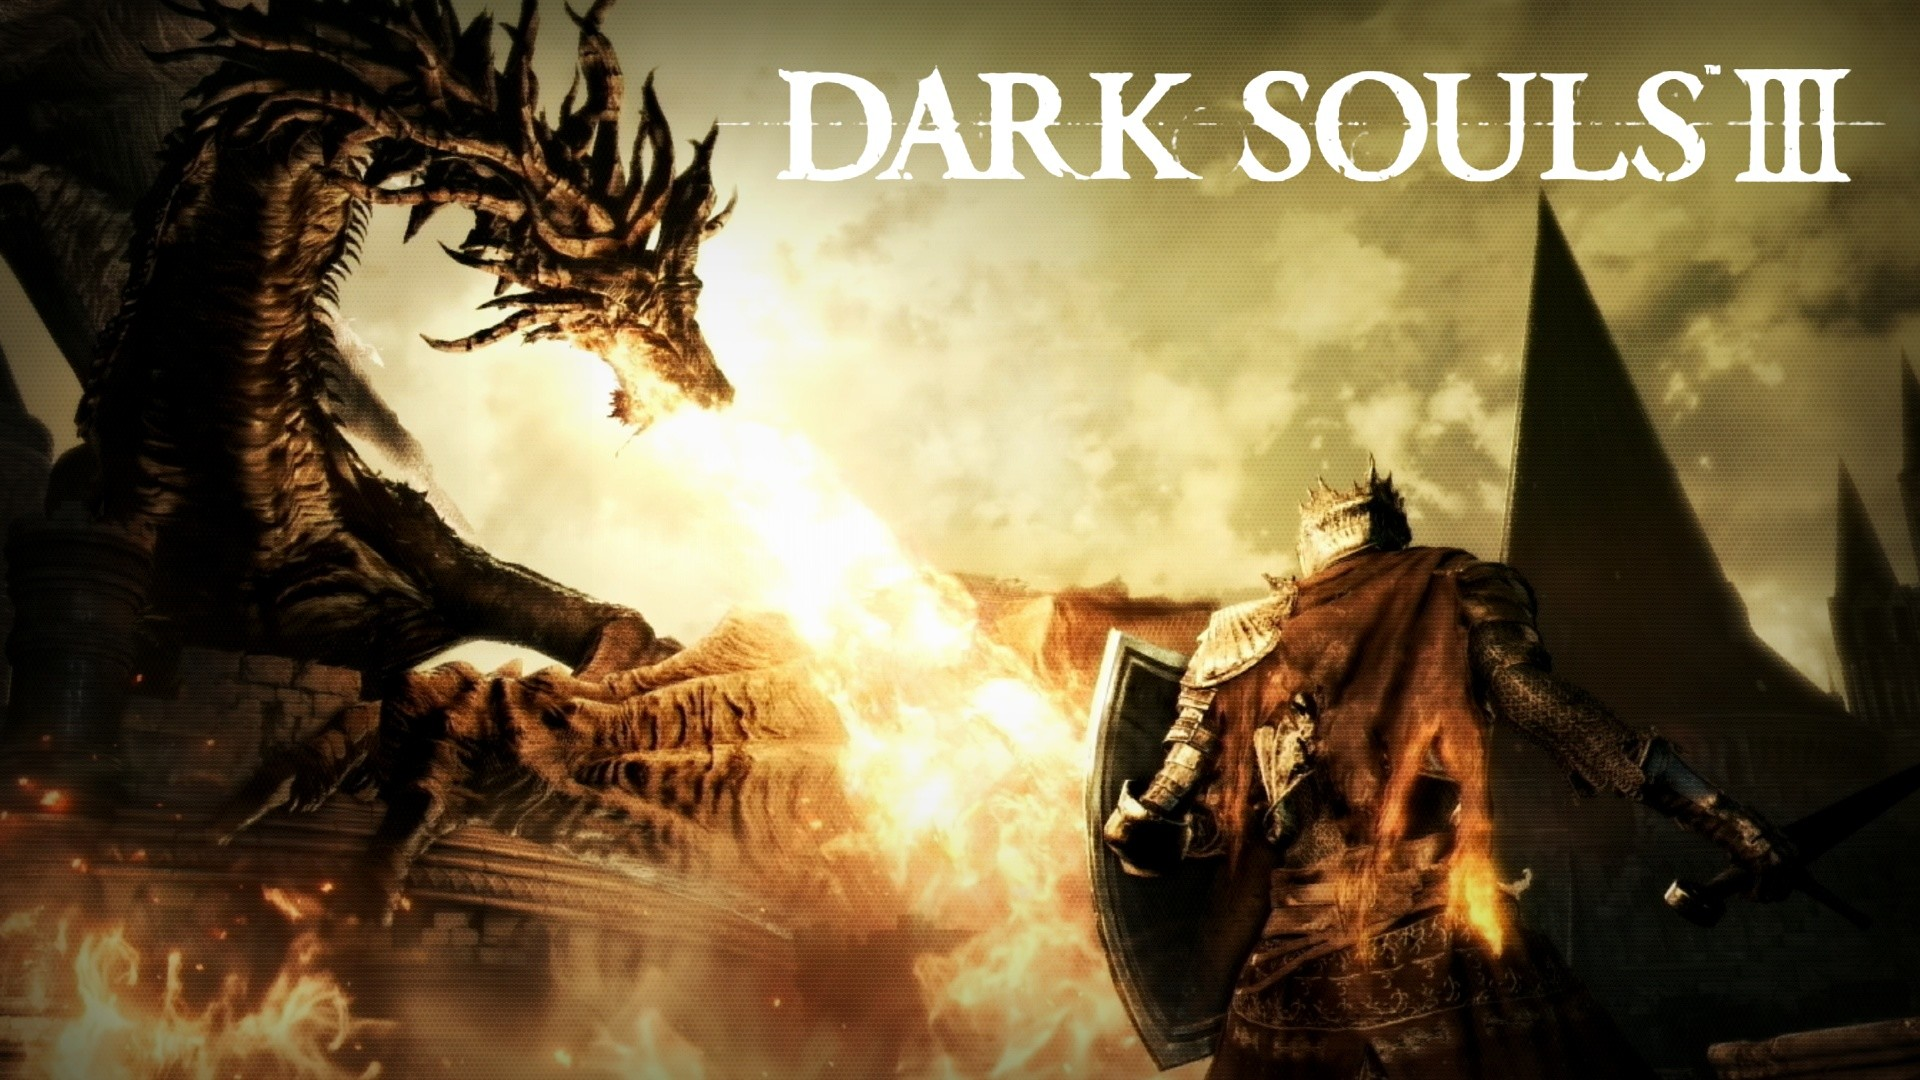 1920x1080 The New Dark Souls DLC looks Dope!